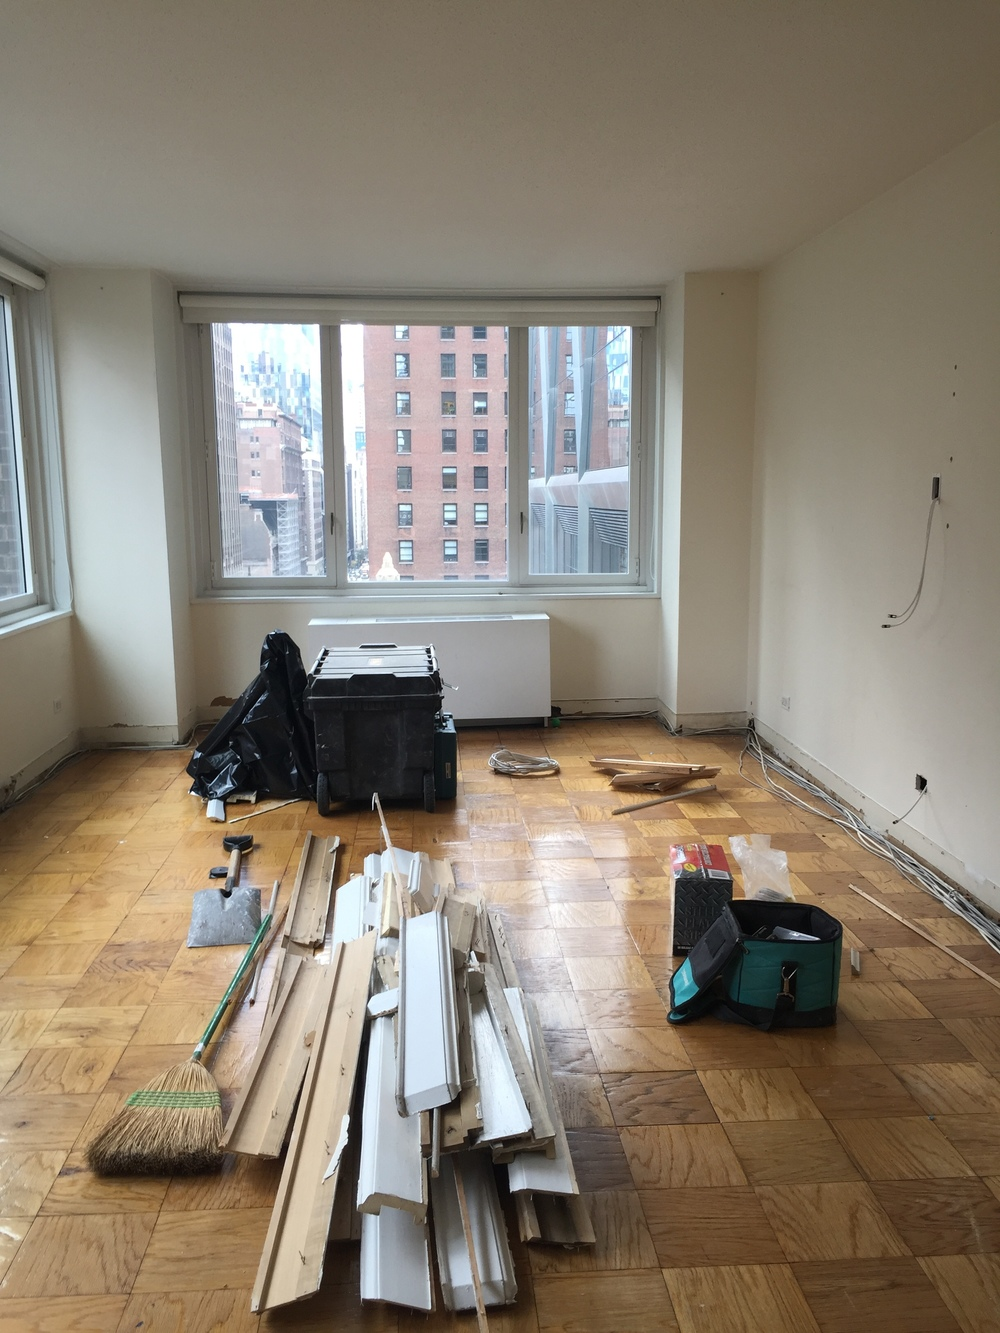 Worthwhile Fixes for a New York City Apartment, October 2015.